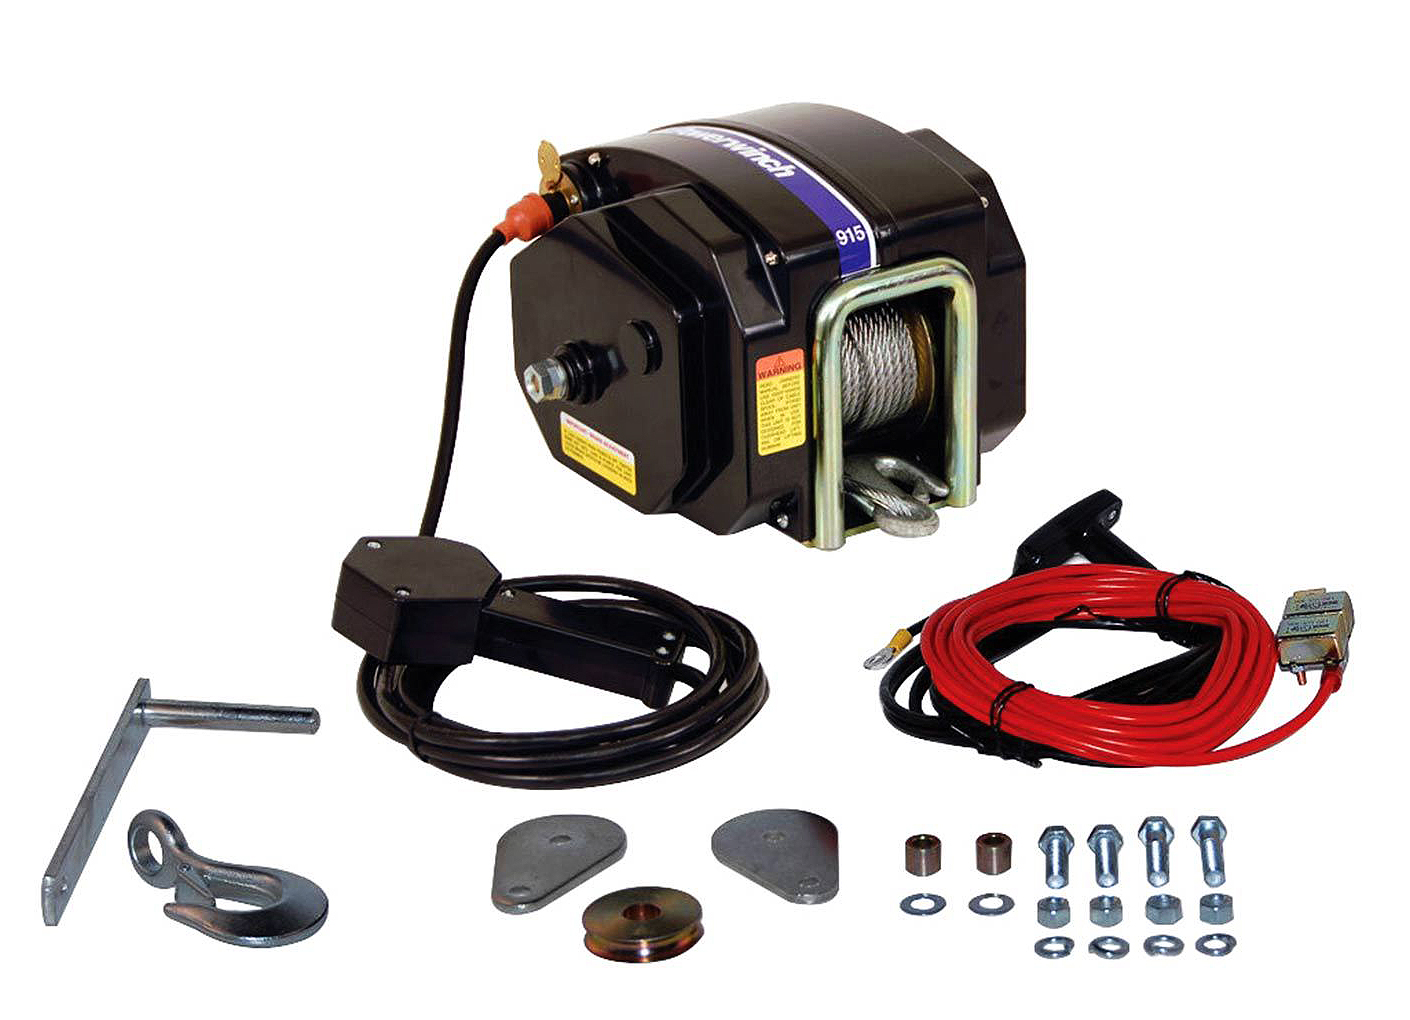 hight resolution of here s what you get with powerwinch s model 915 electric trailer winch